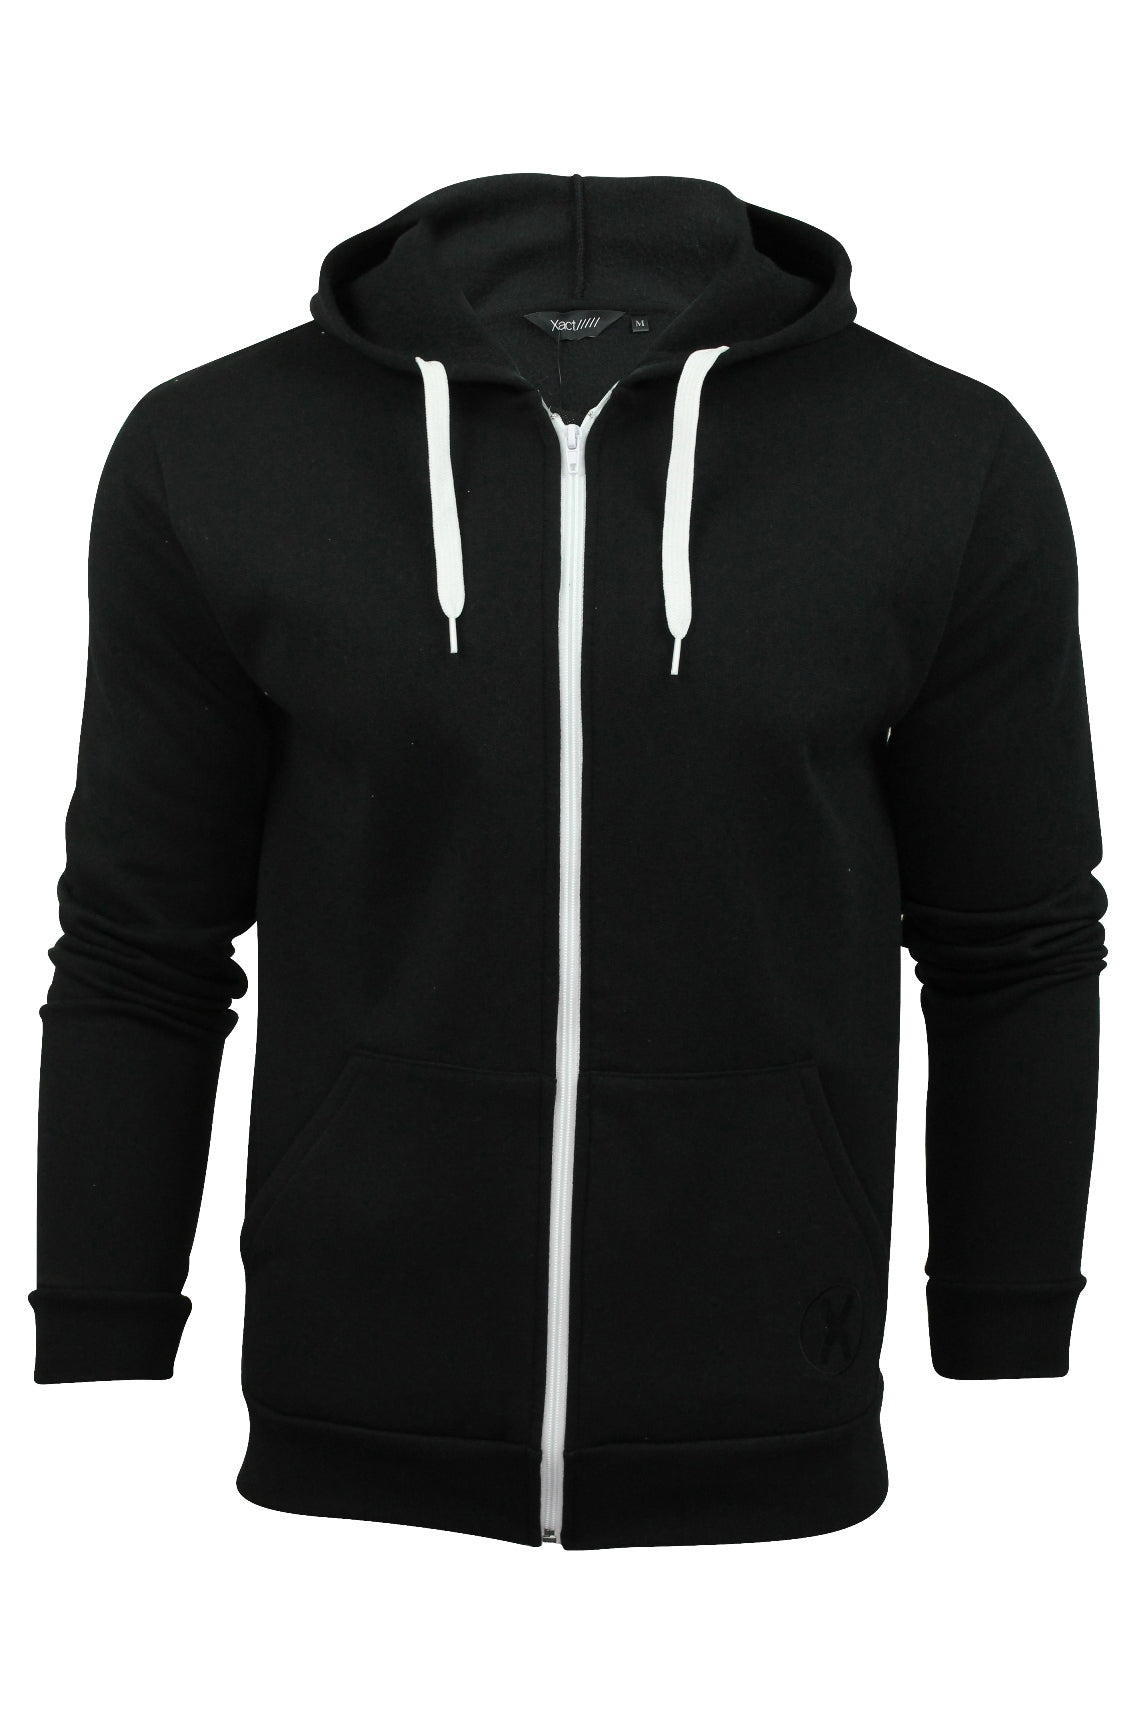 Mens Hoodie Sweat-Top by Xact Clothing Made in England-Main Image